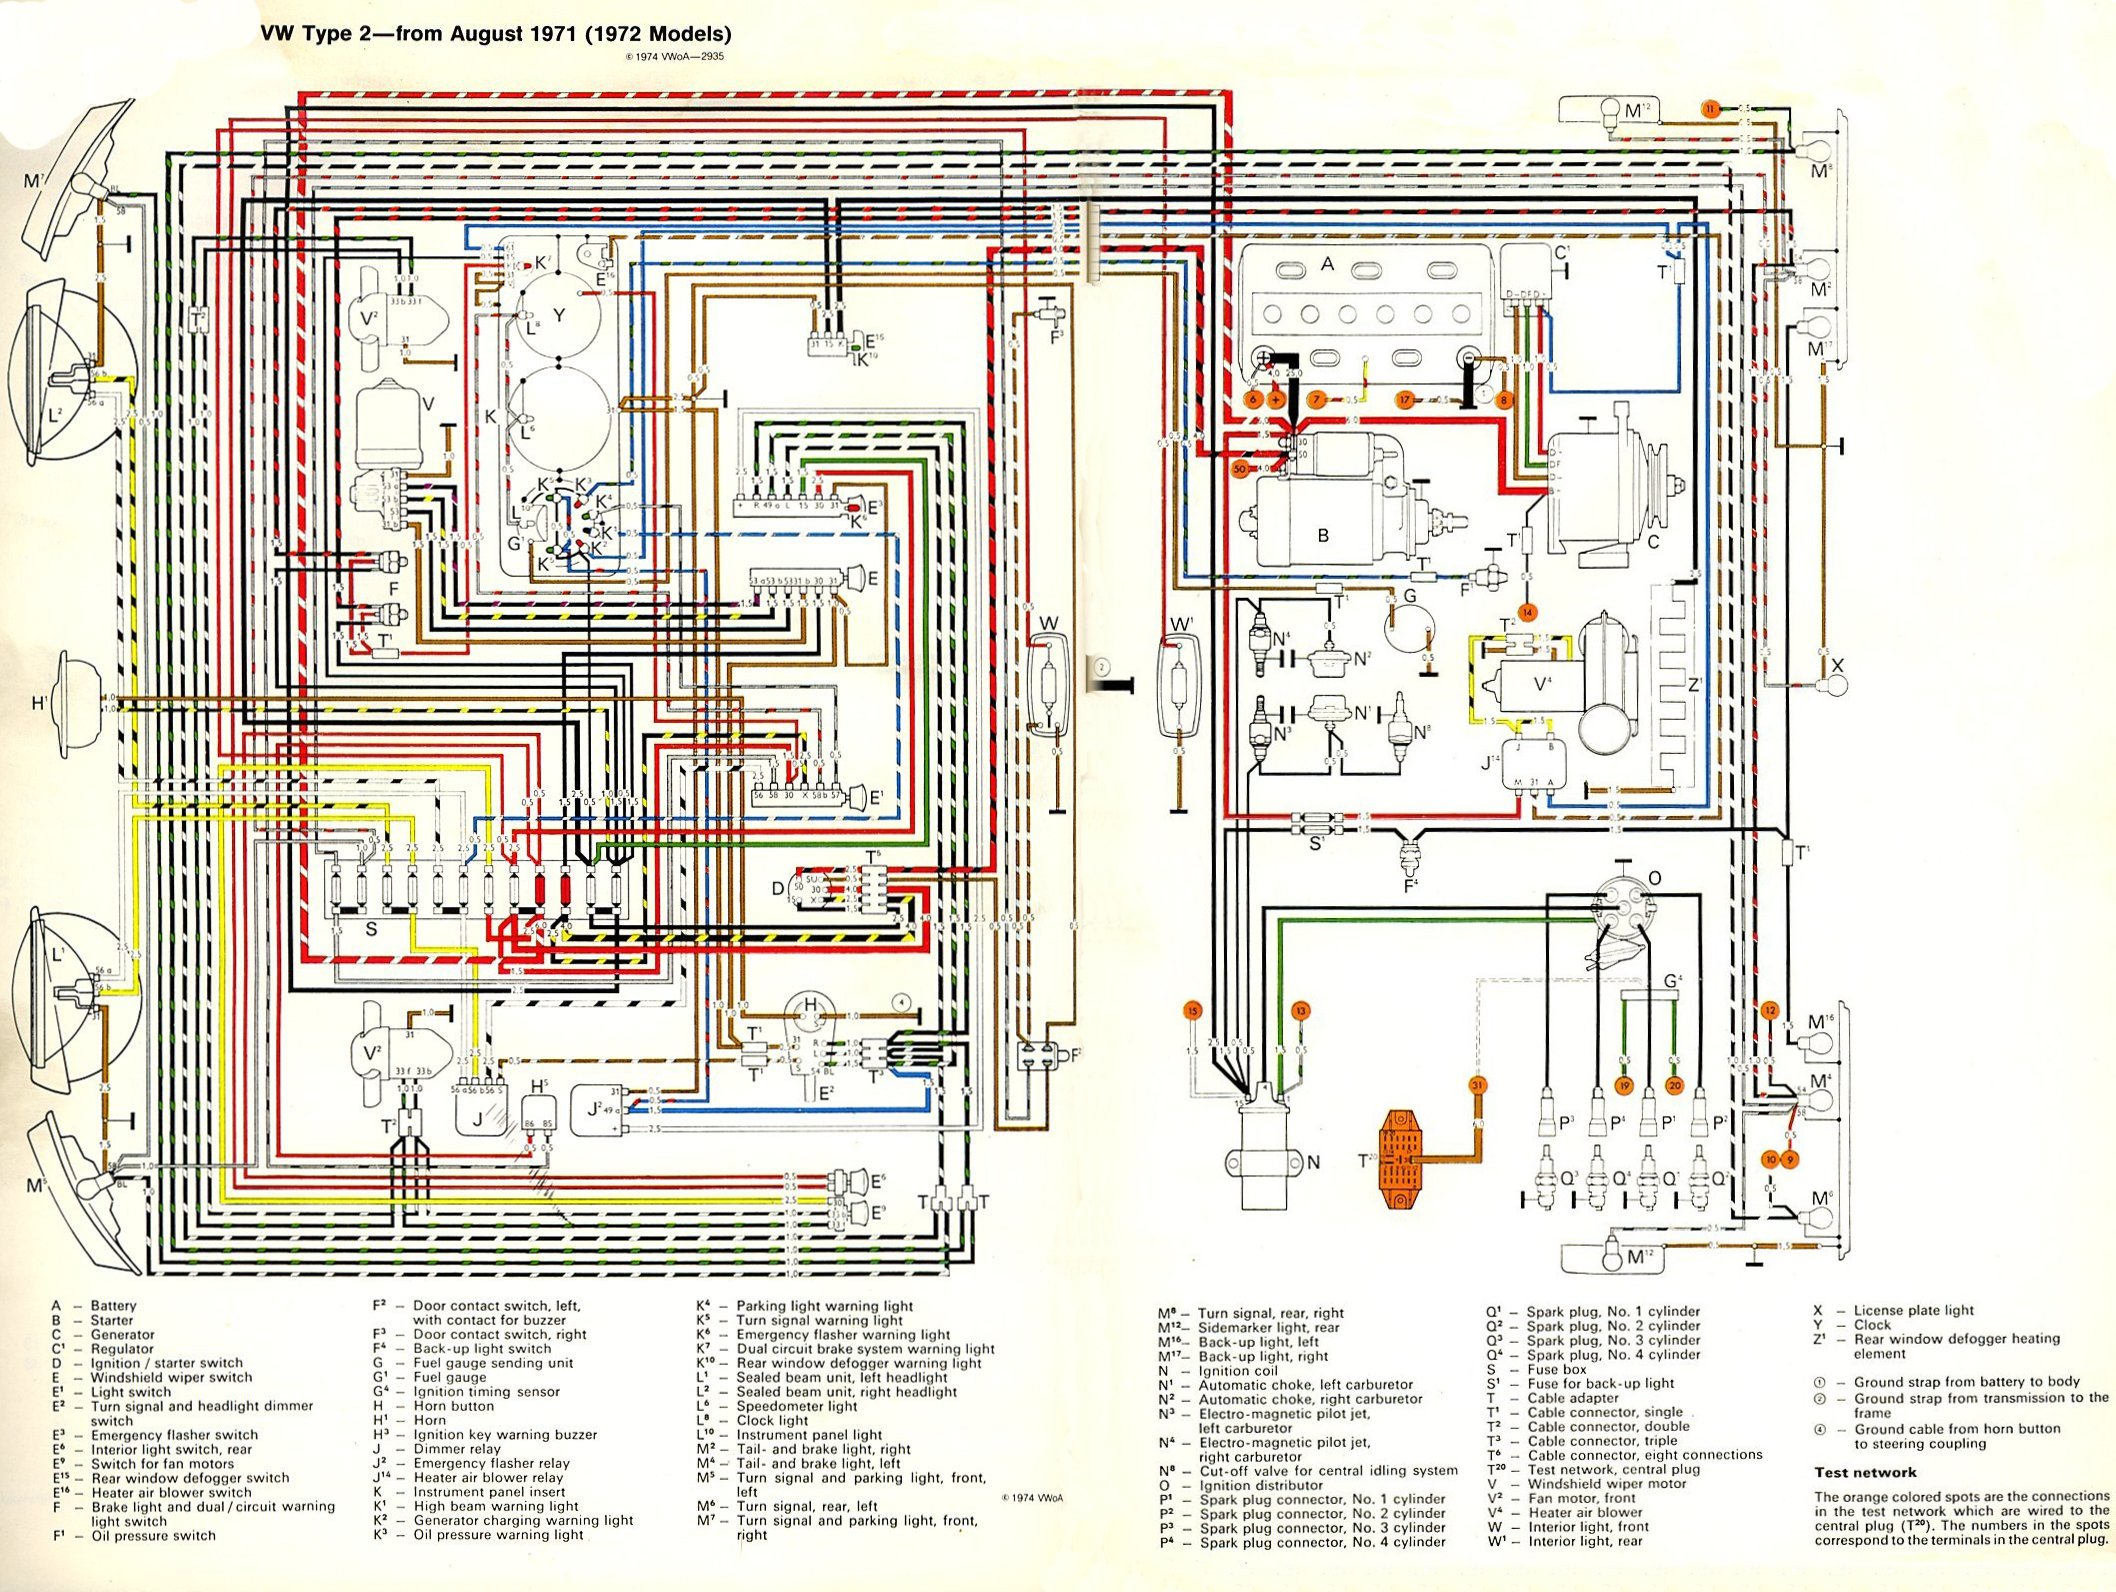 Vw T4 Wiring Diagram Free Library A Dimmer Switch To Table Lamp Download Diagrams Bus 1972 Wiringresized6652c500 For On Images